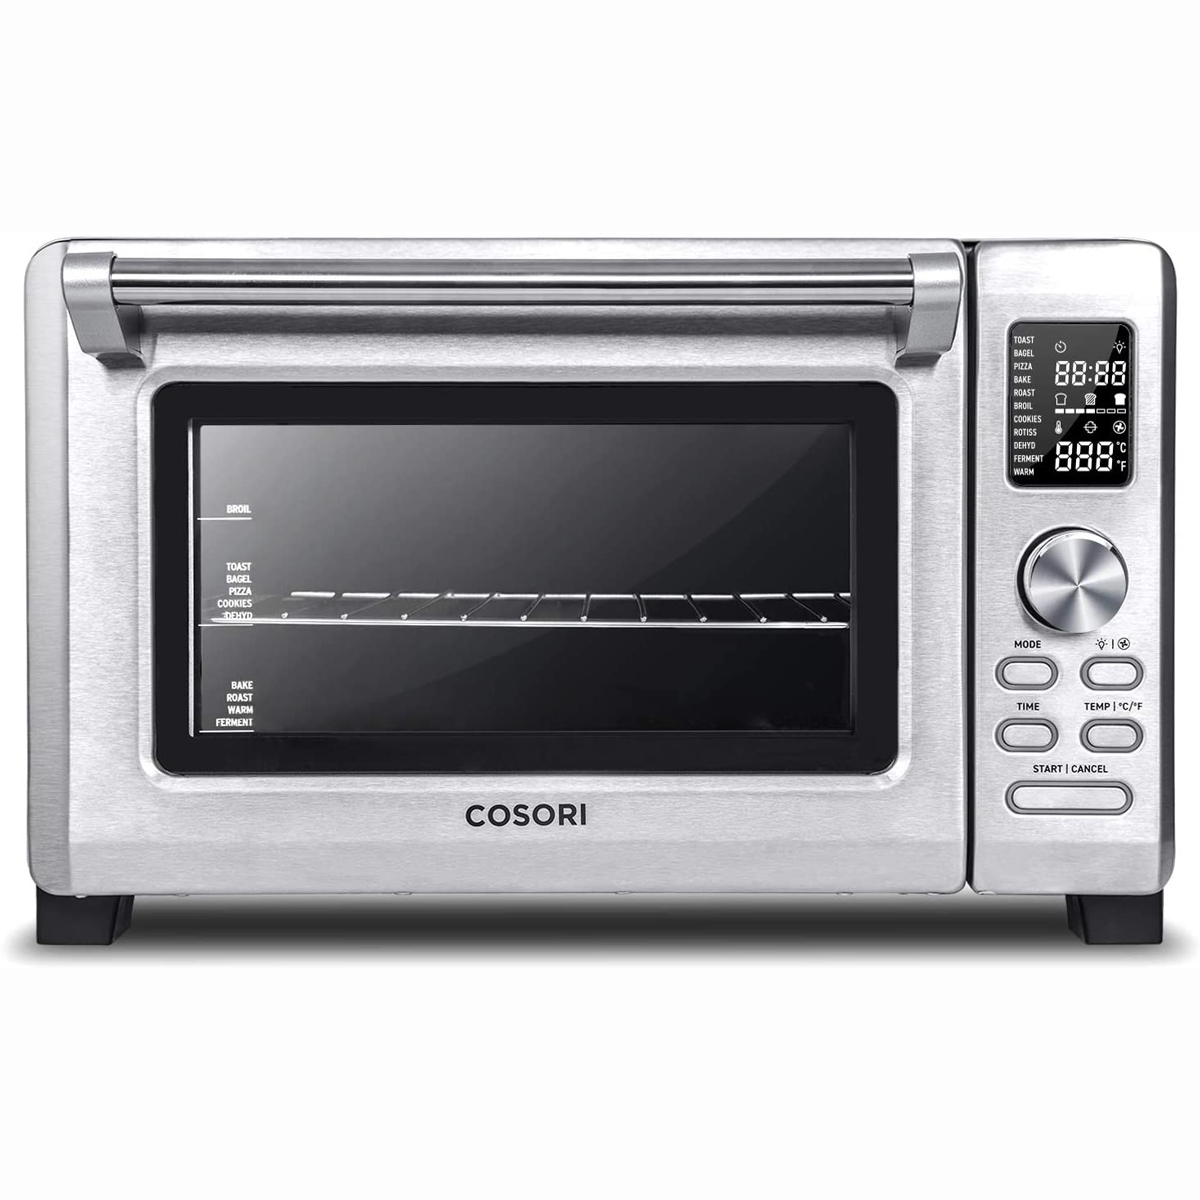 early prime day deals cosori oven